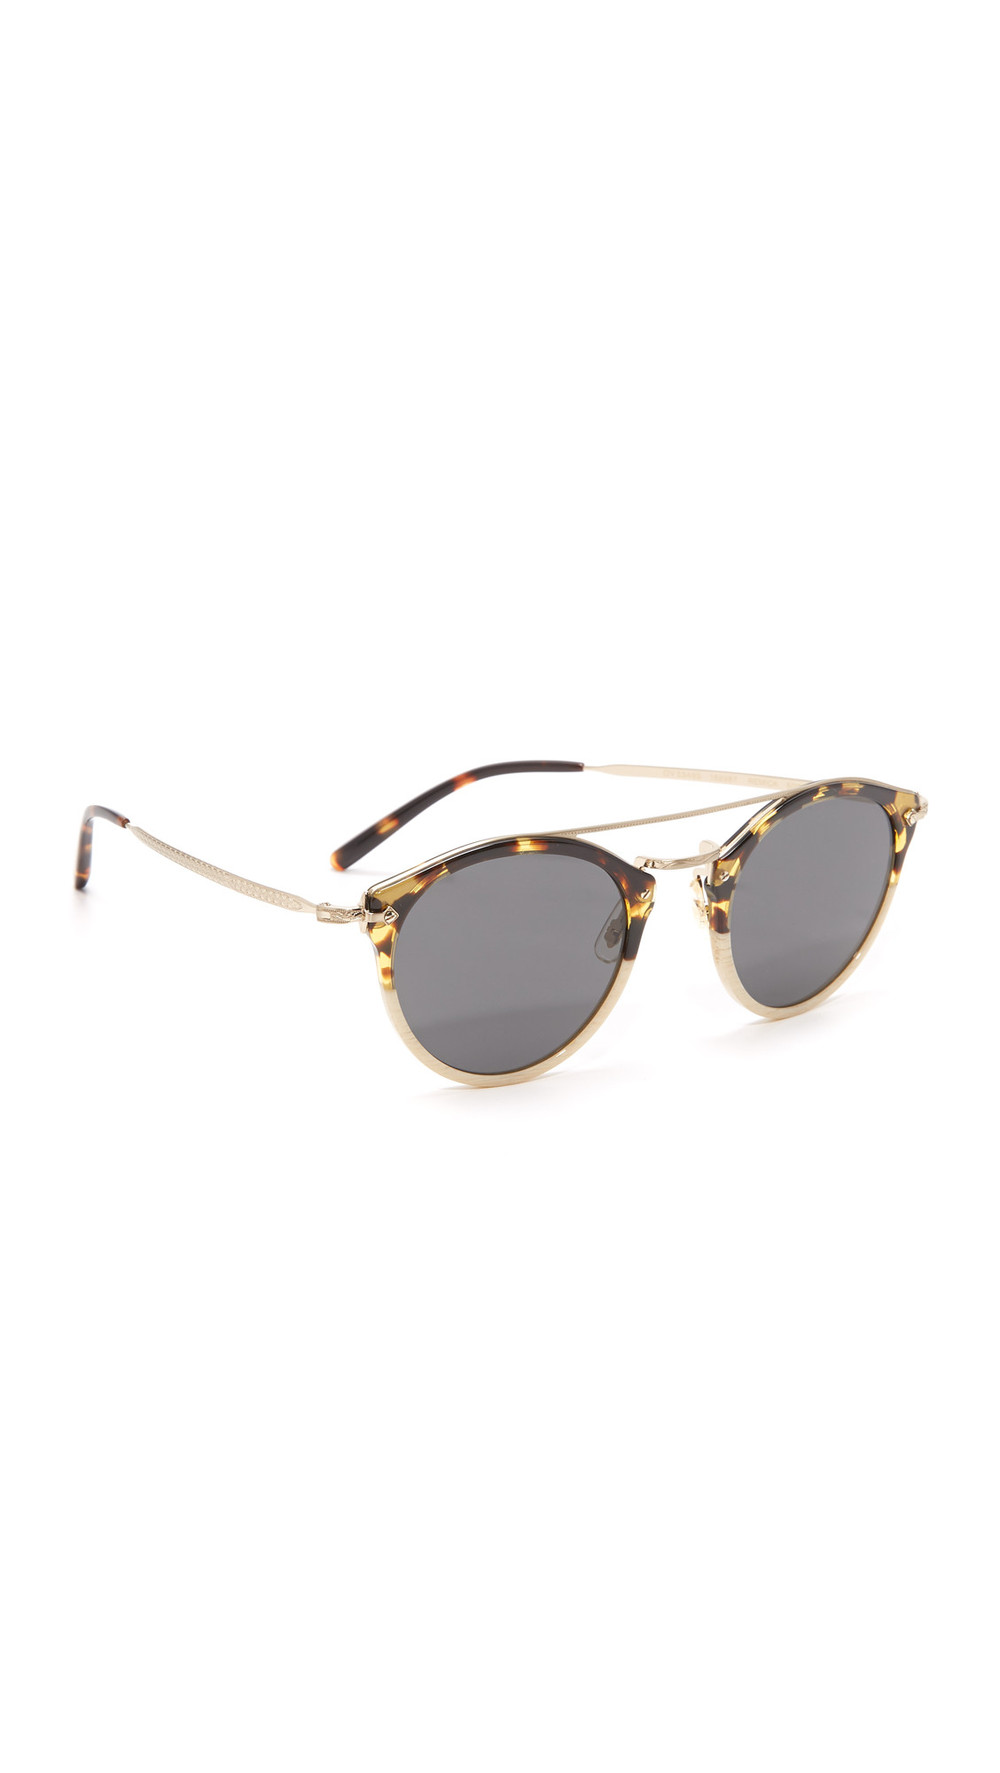 93071485ffe  420 210. Oliver Peoples Eyewear · Oliver Peoples Eyewear Remick Limited  Edition Sunglasses ...